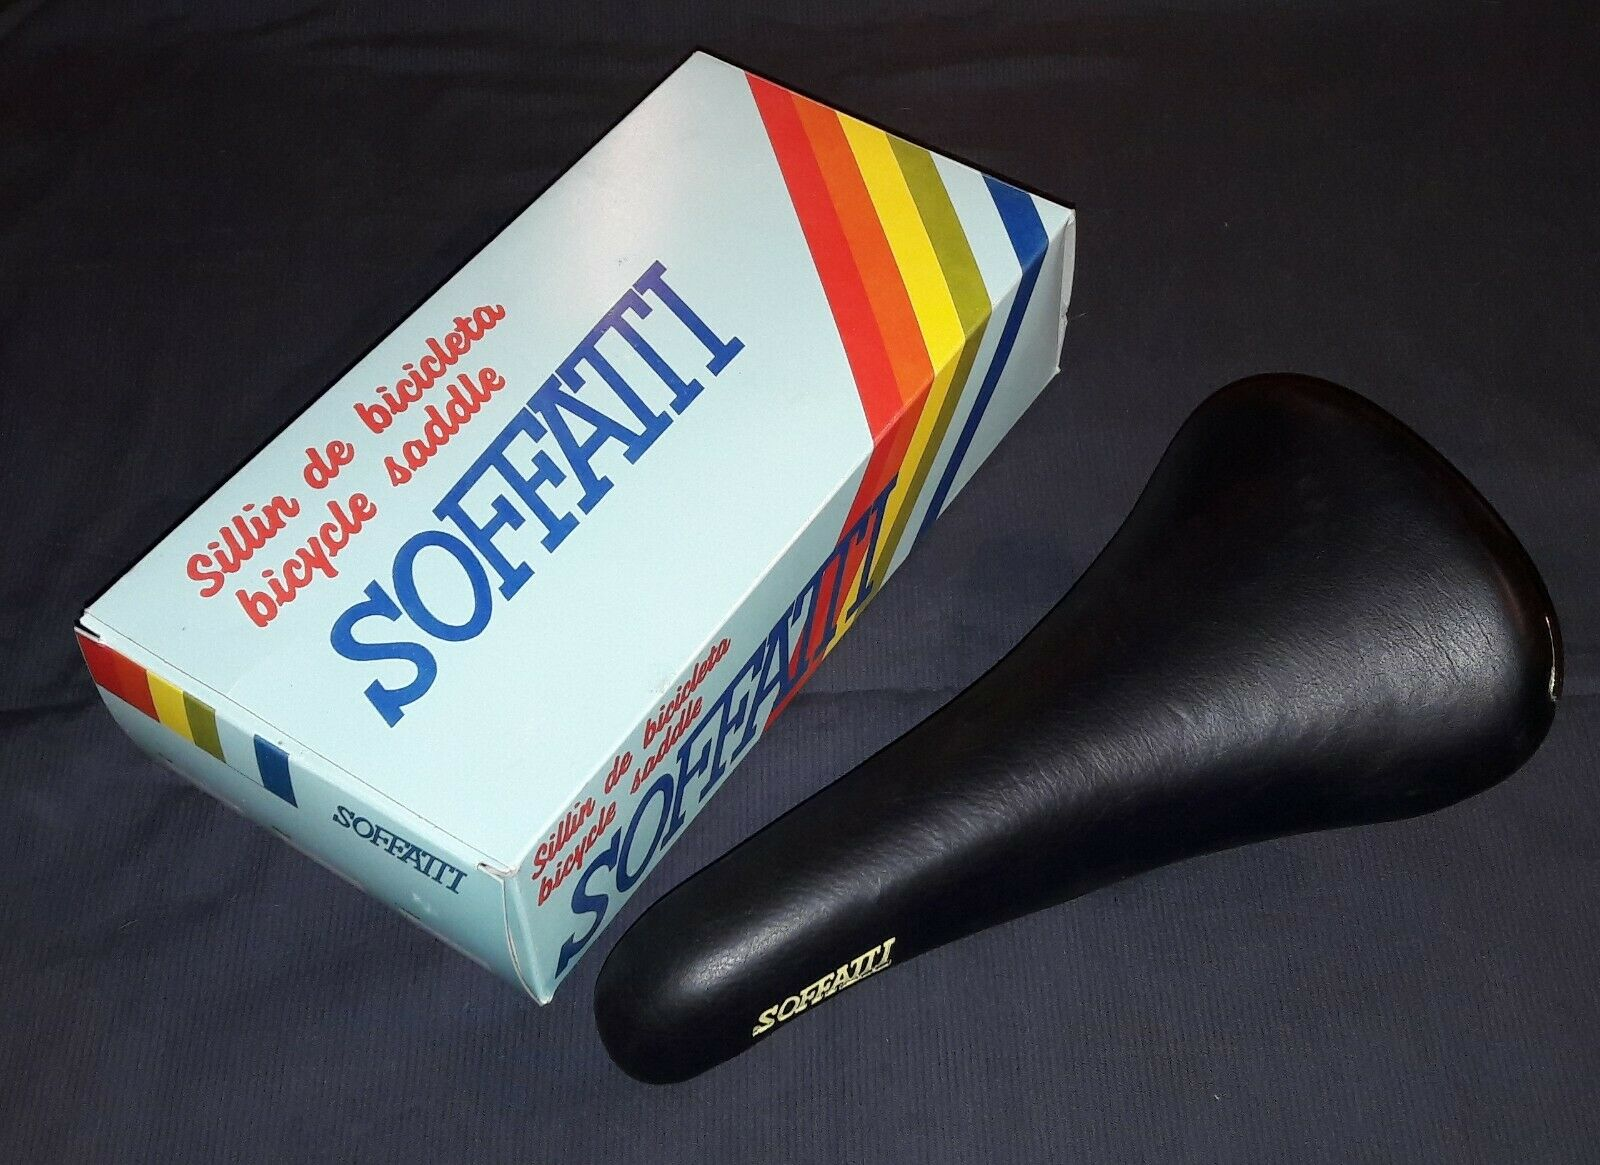 NIB NOS Soffatti vintage saddle schwarz - Made in spain- Zeus Razesa Cinelli Arius